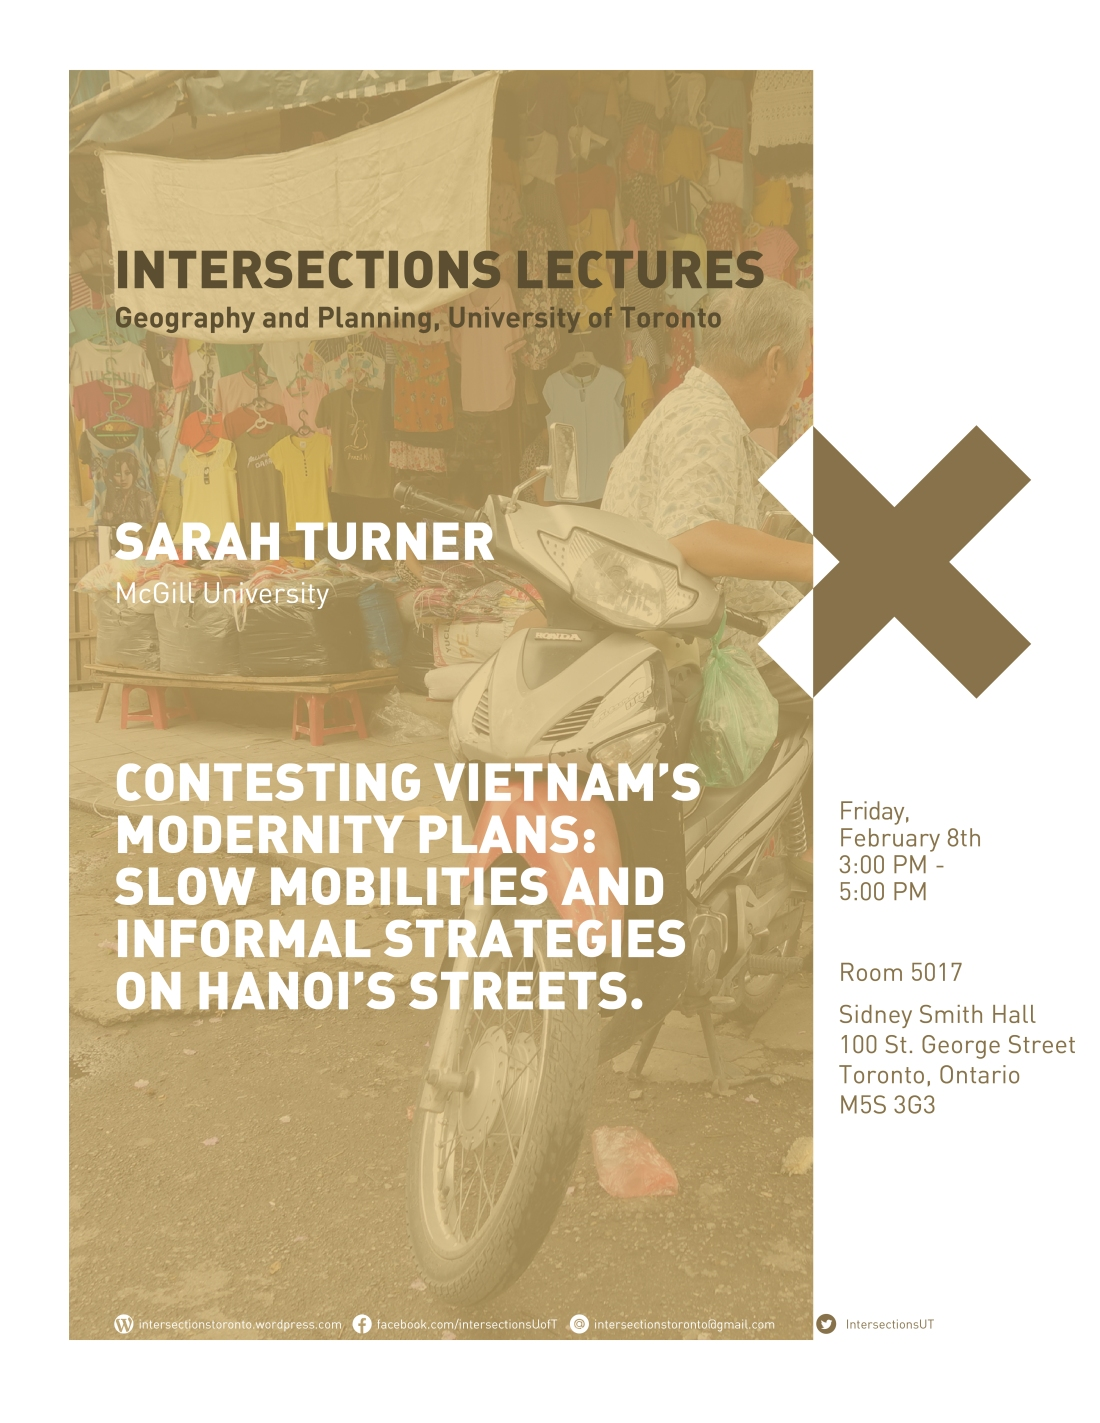 intersections 2018-19 posters_sarah turner